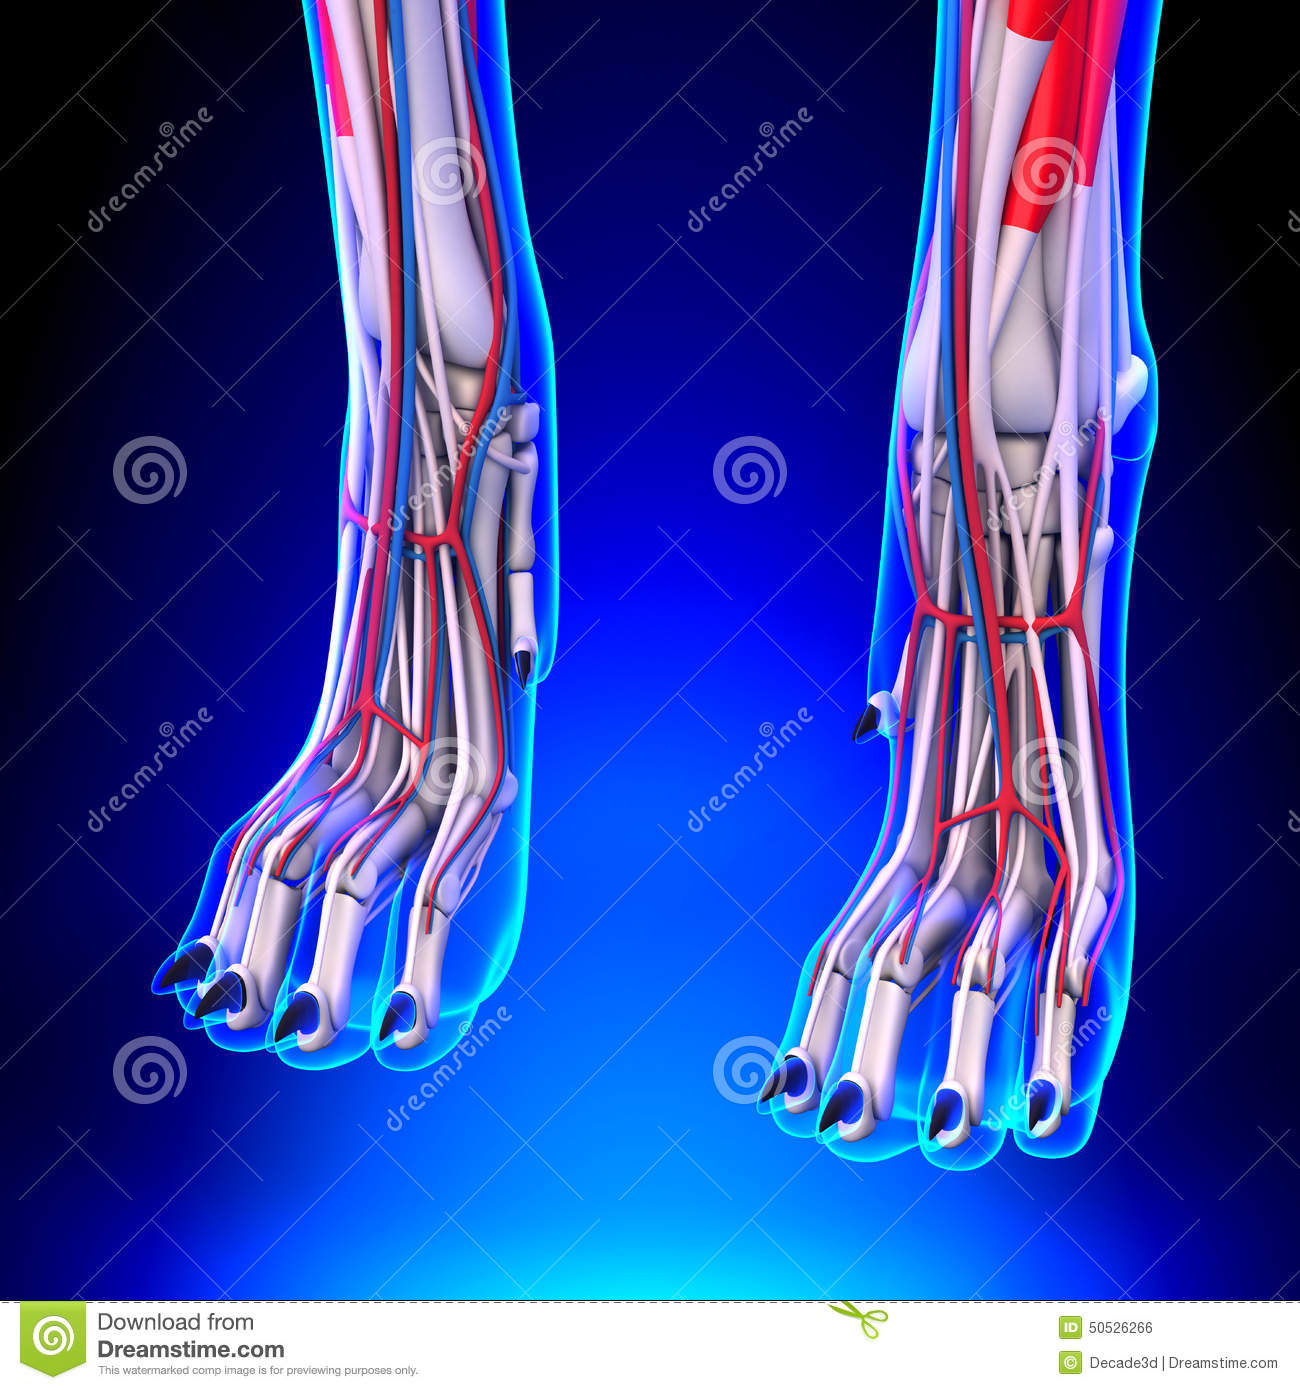 Dog Front Legs Anatomy With Circulatory System Stock Illustration